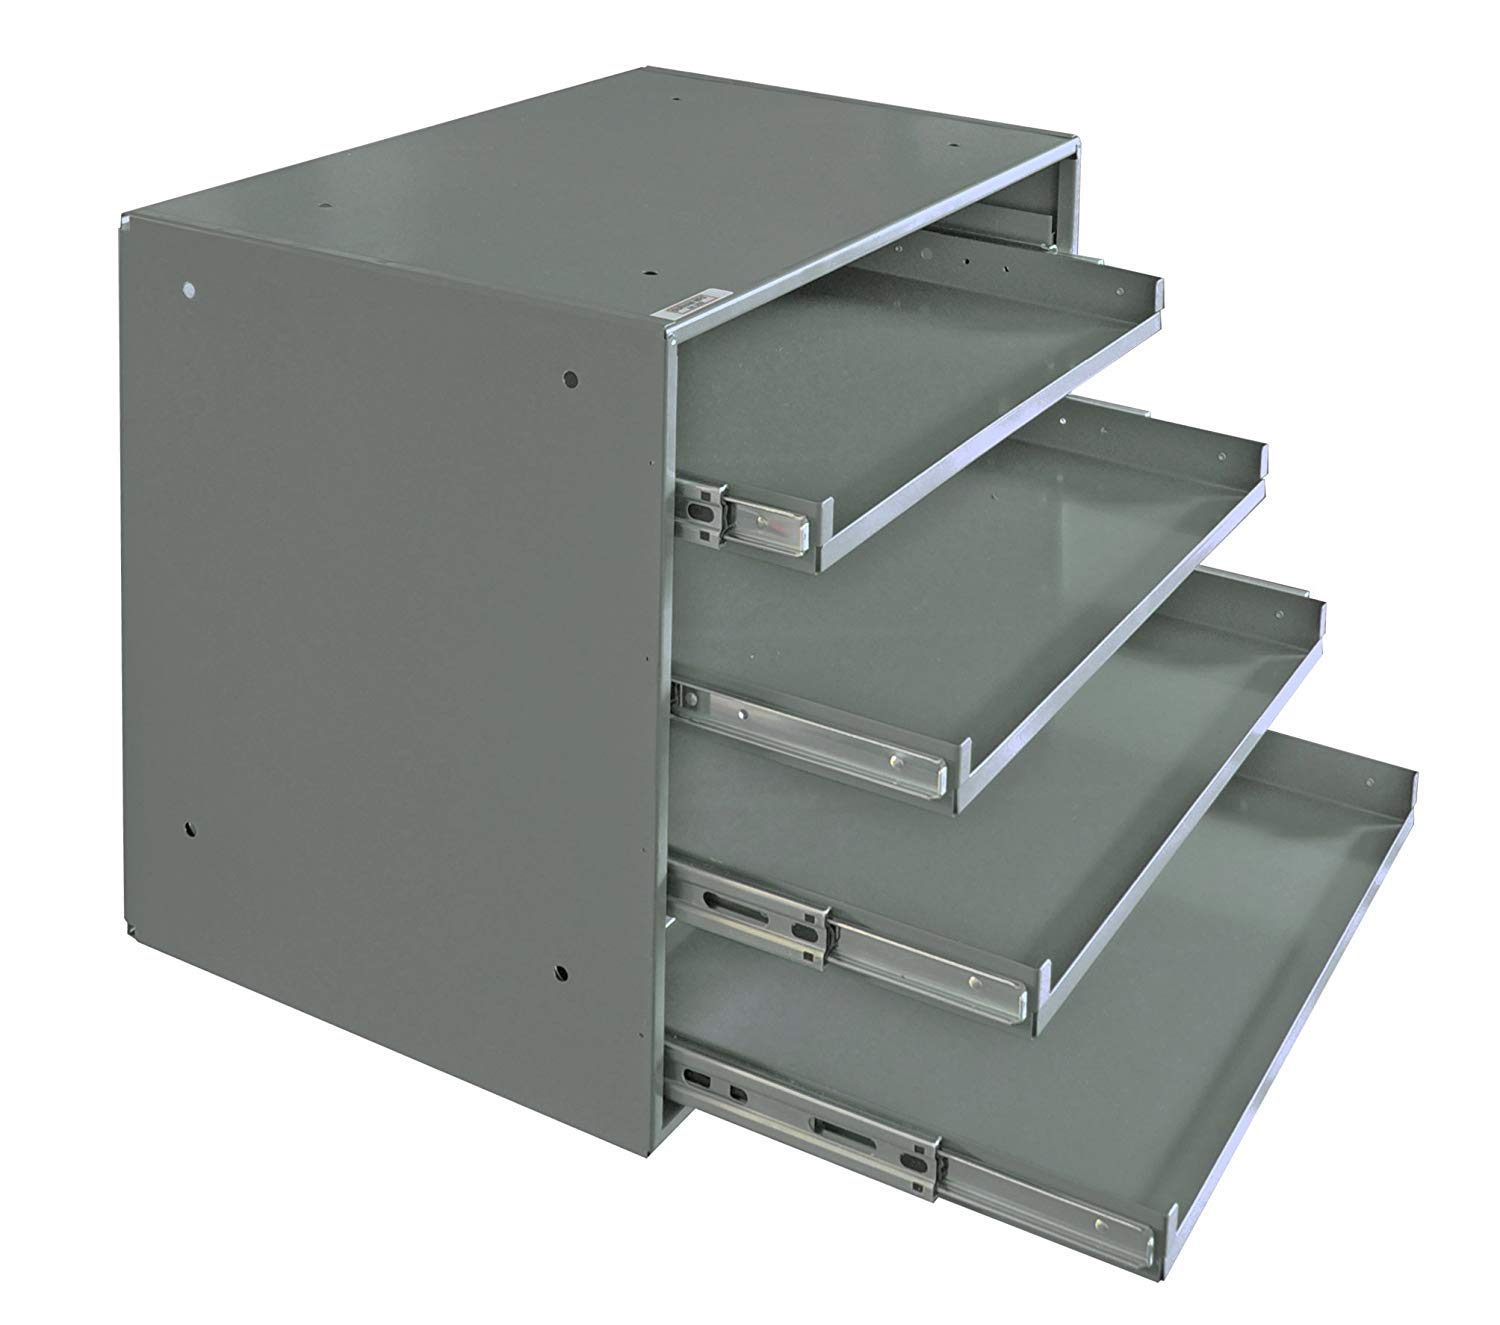 Durham 310B-95 Heavy Duty Prime Cold-Rolled Steel Triple Track Bearing Slide Rack, 4 Compartments, 12-1/2'' Length x 20'' Width x 15'' Height, Gray Powder Coat Finish (Pack of 2)